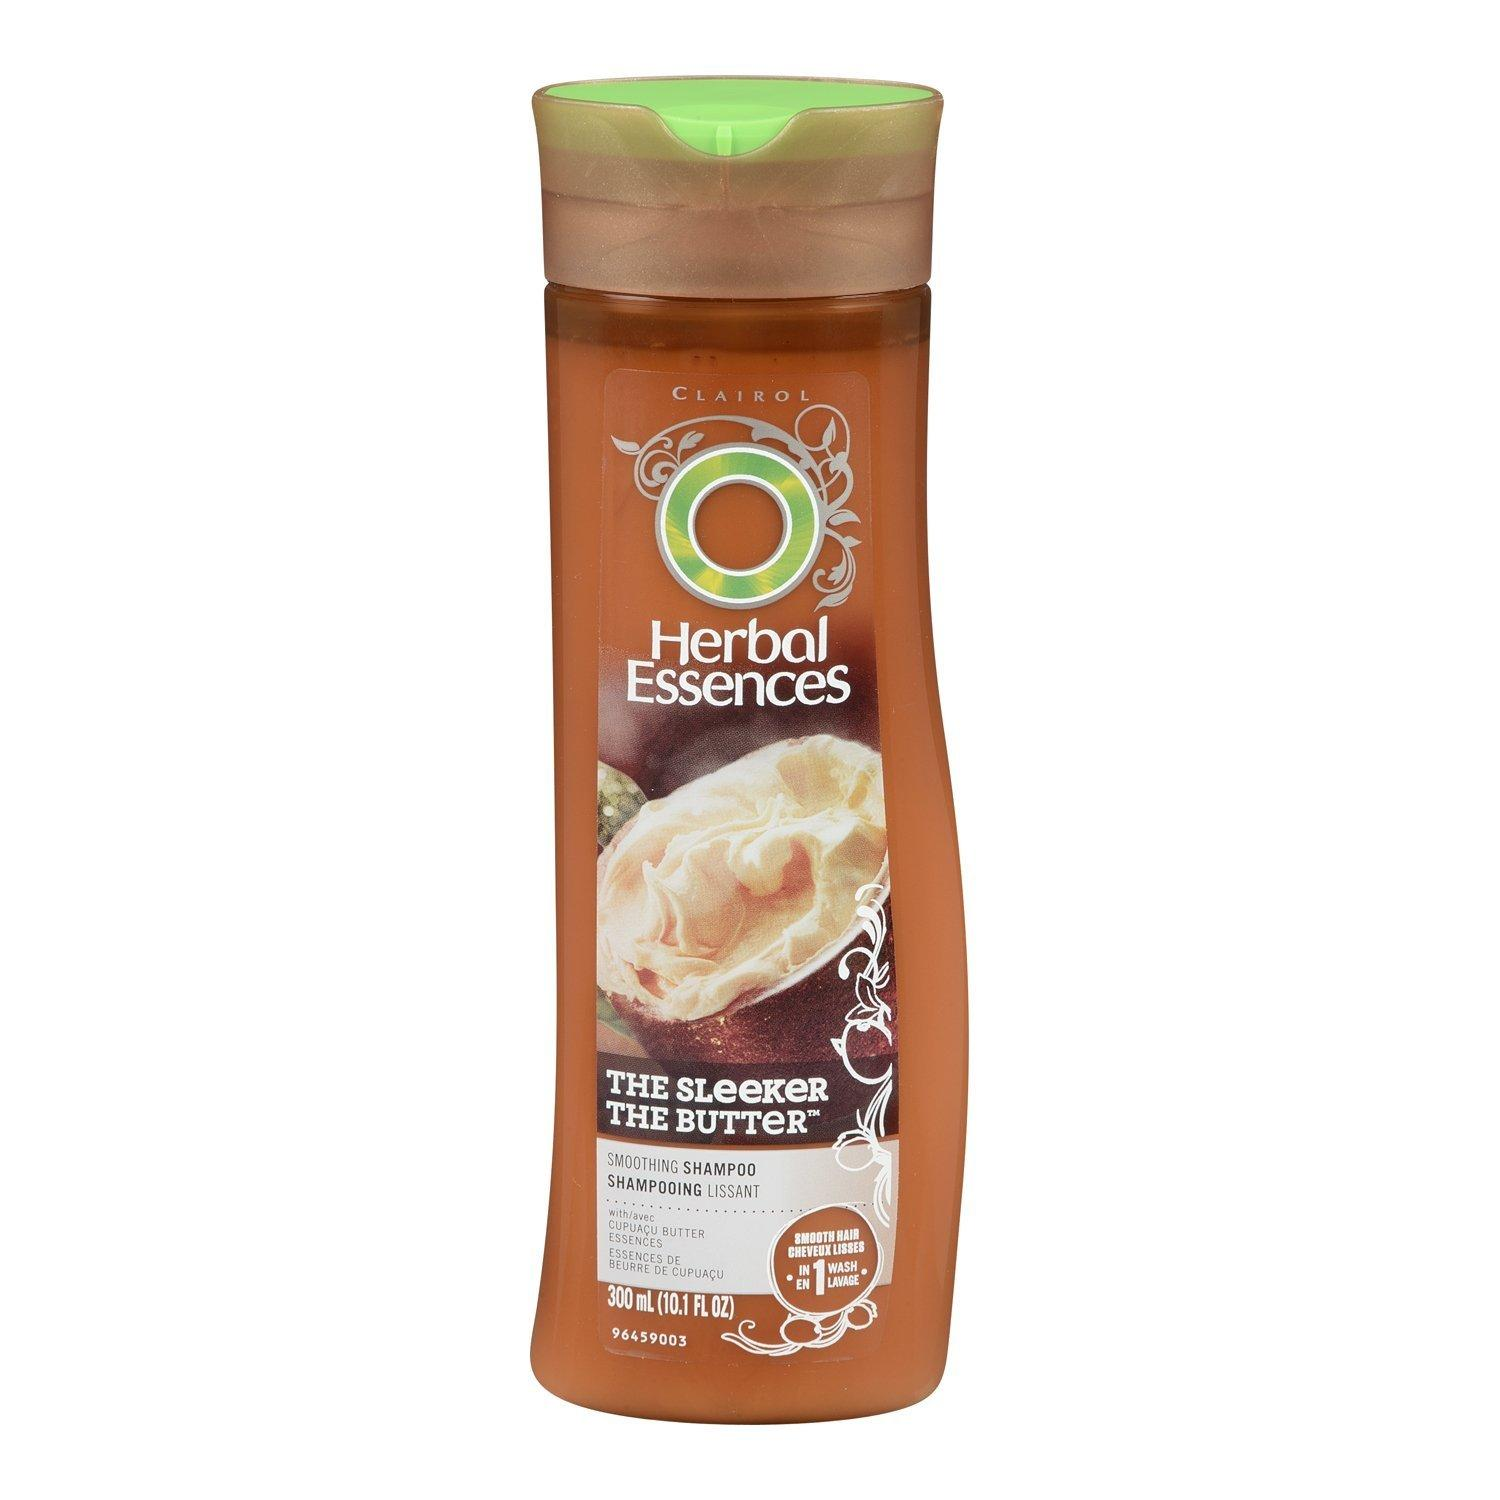 $1.32 Select Herbal Essences Shampoos and Conditioners @ Amazon